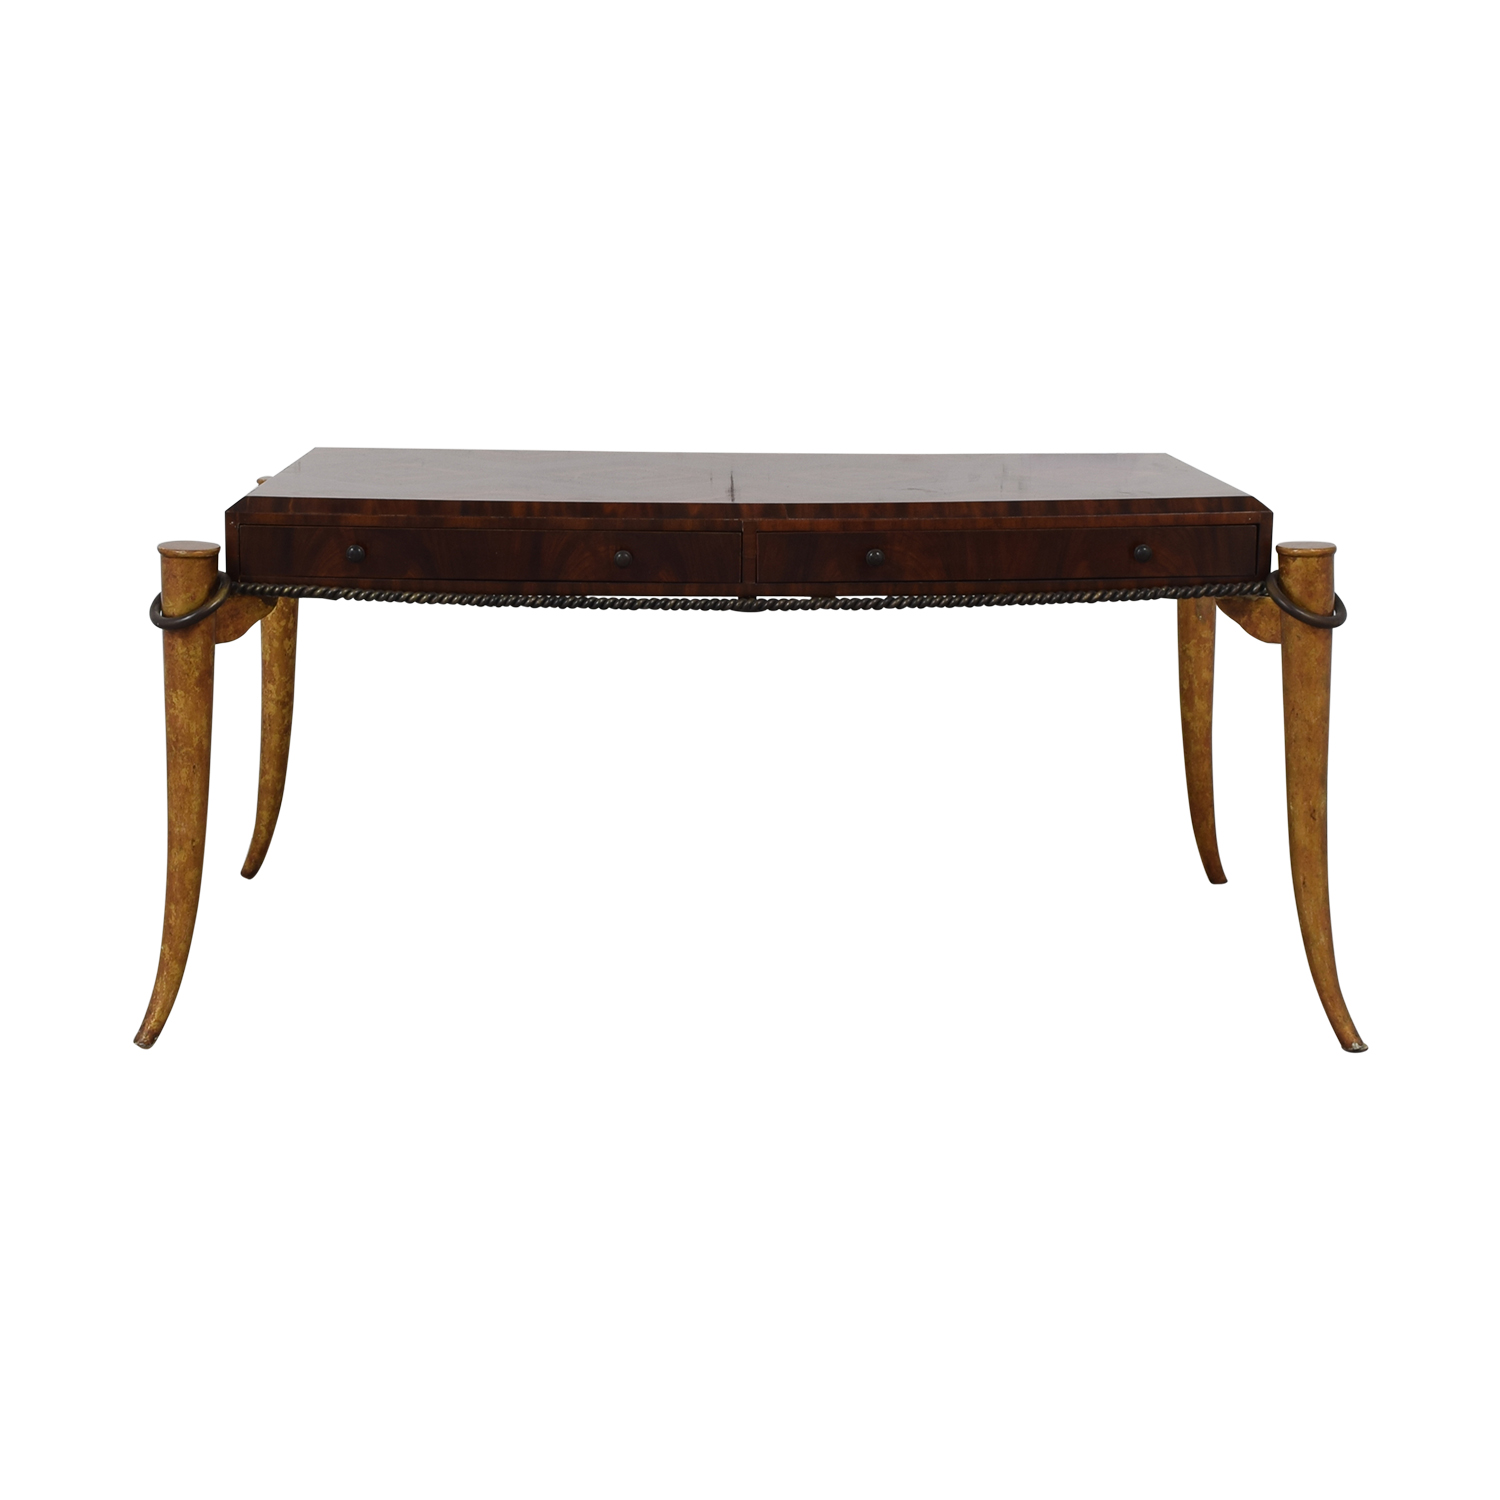 shop Maitland-Smith Rosewood Inlaid Desk Maitland-Smith Tables